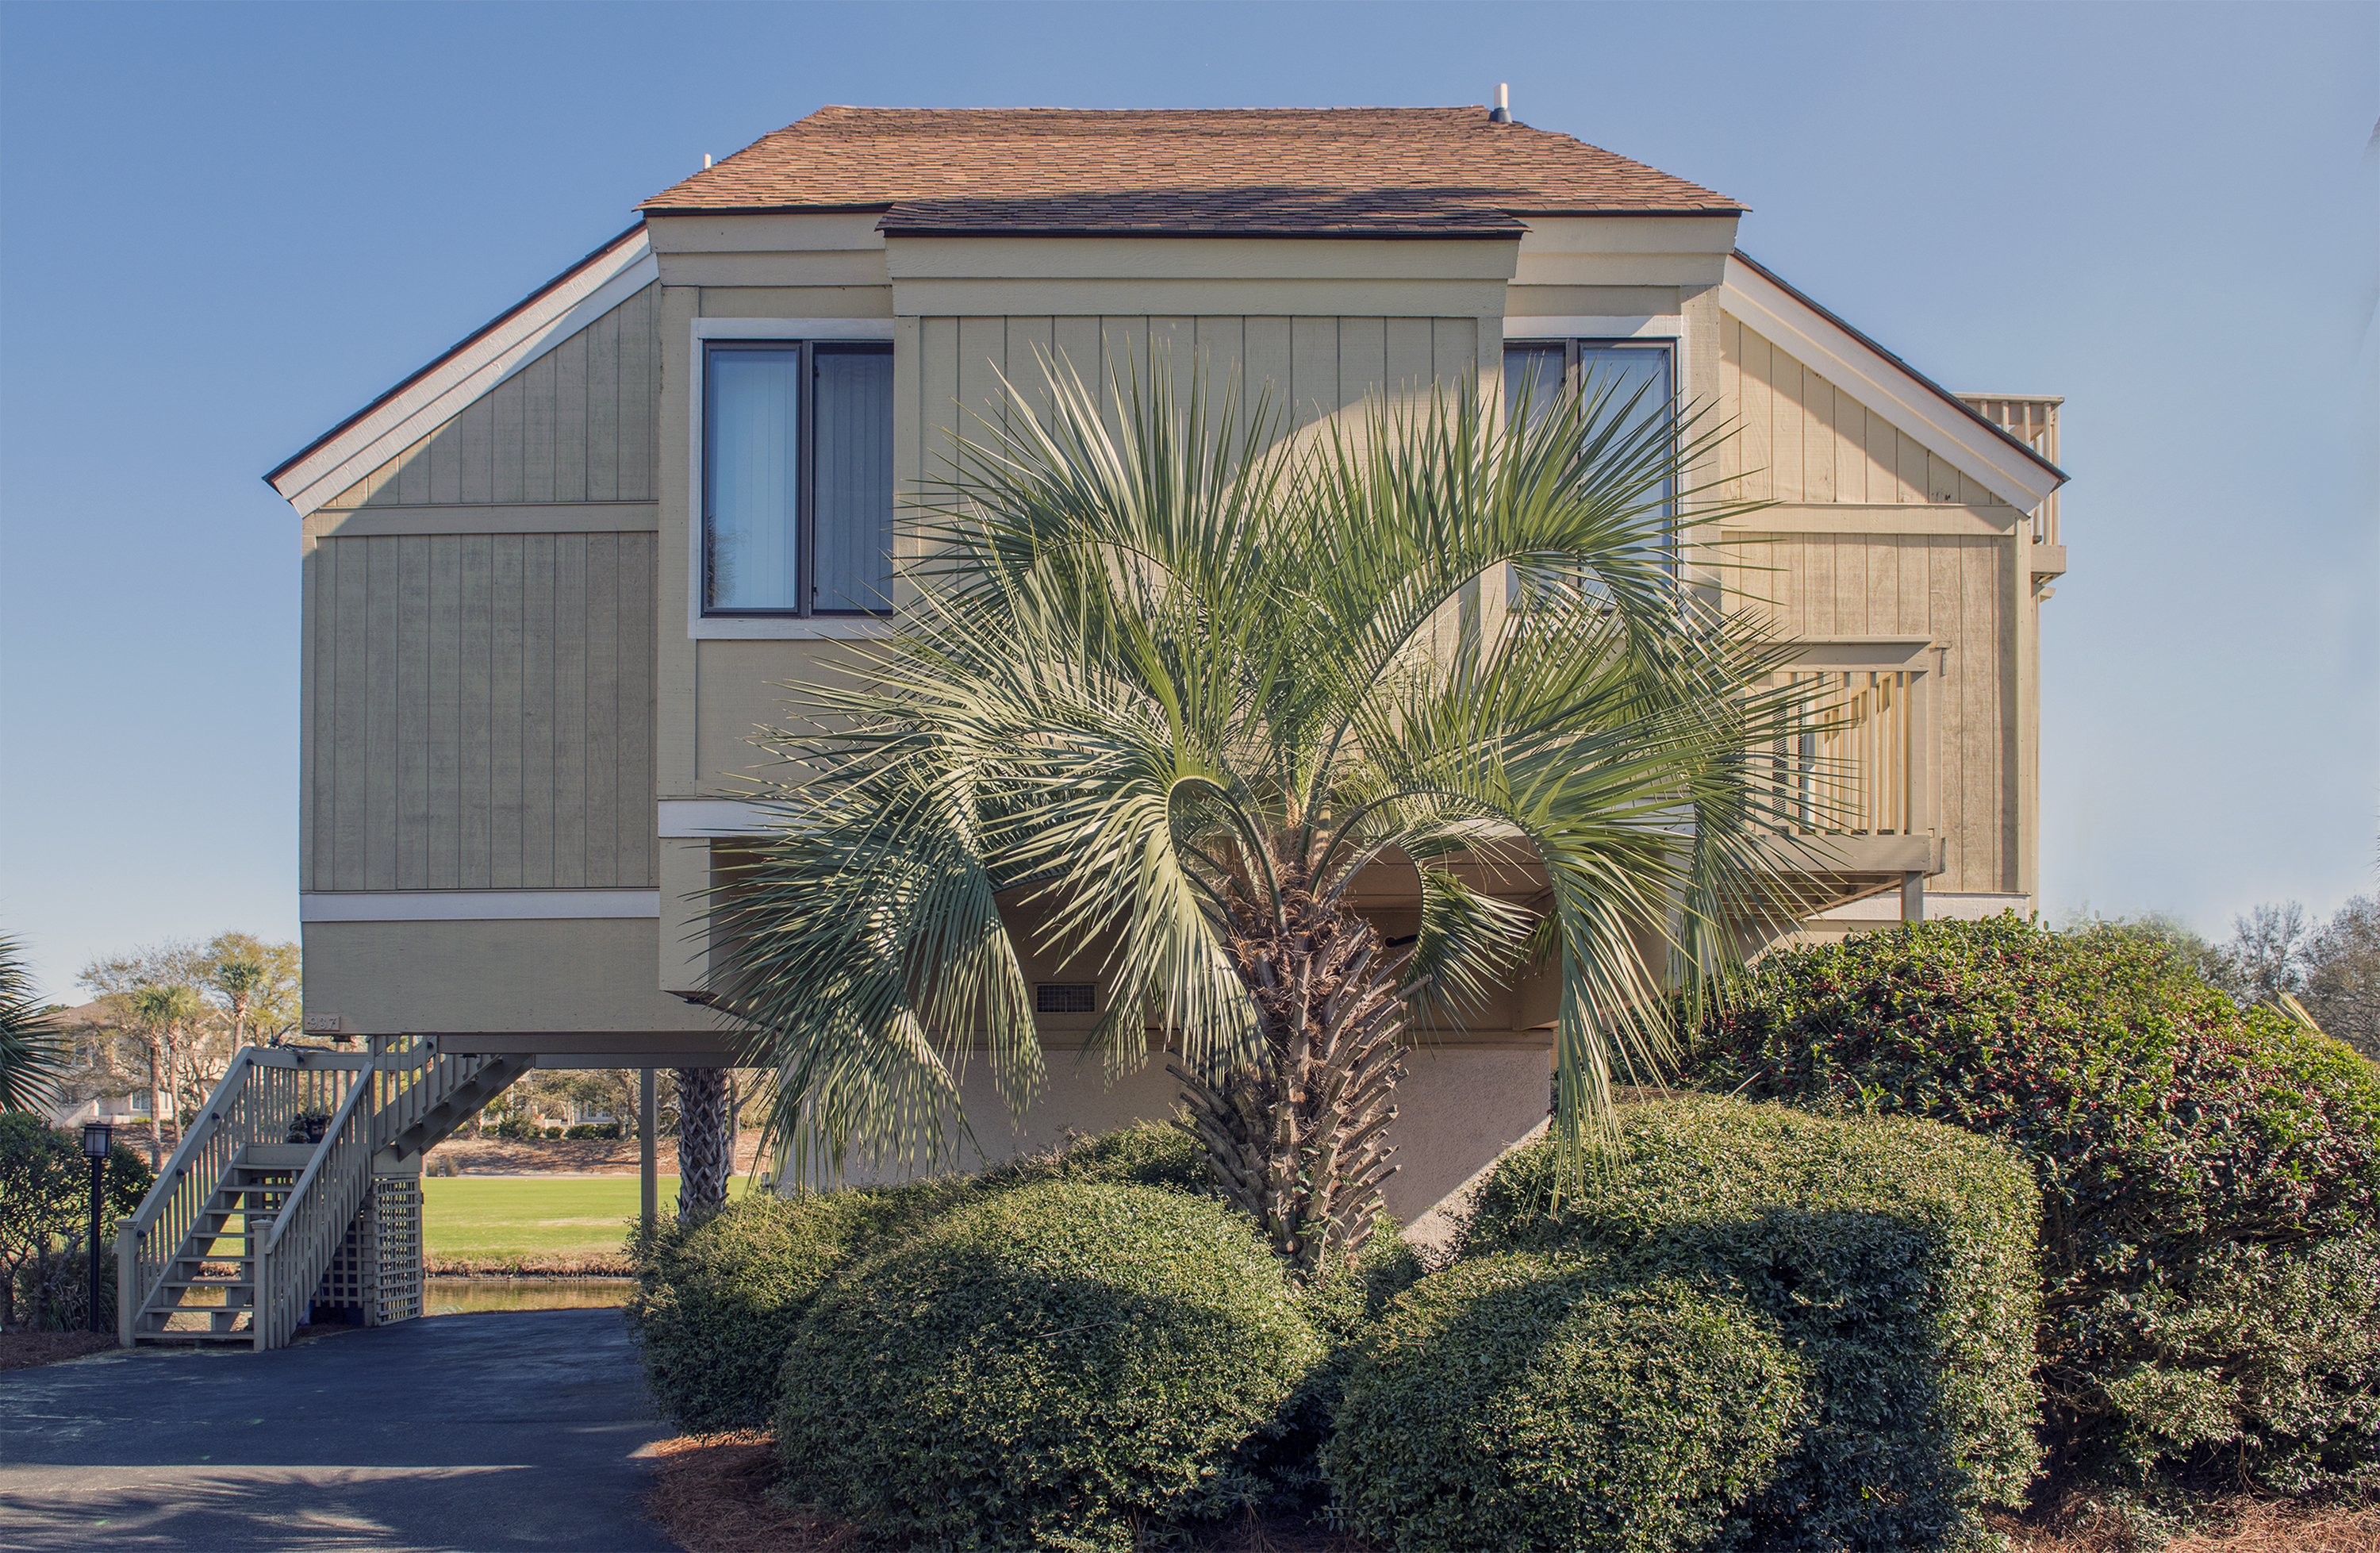 This cottage has great lagoon views and is close to the beach and neighborhood pool.